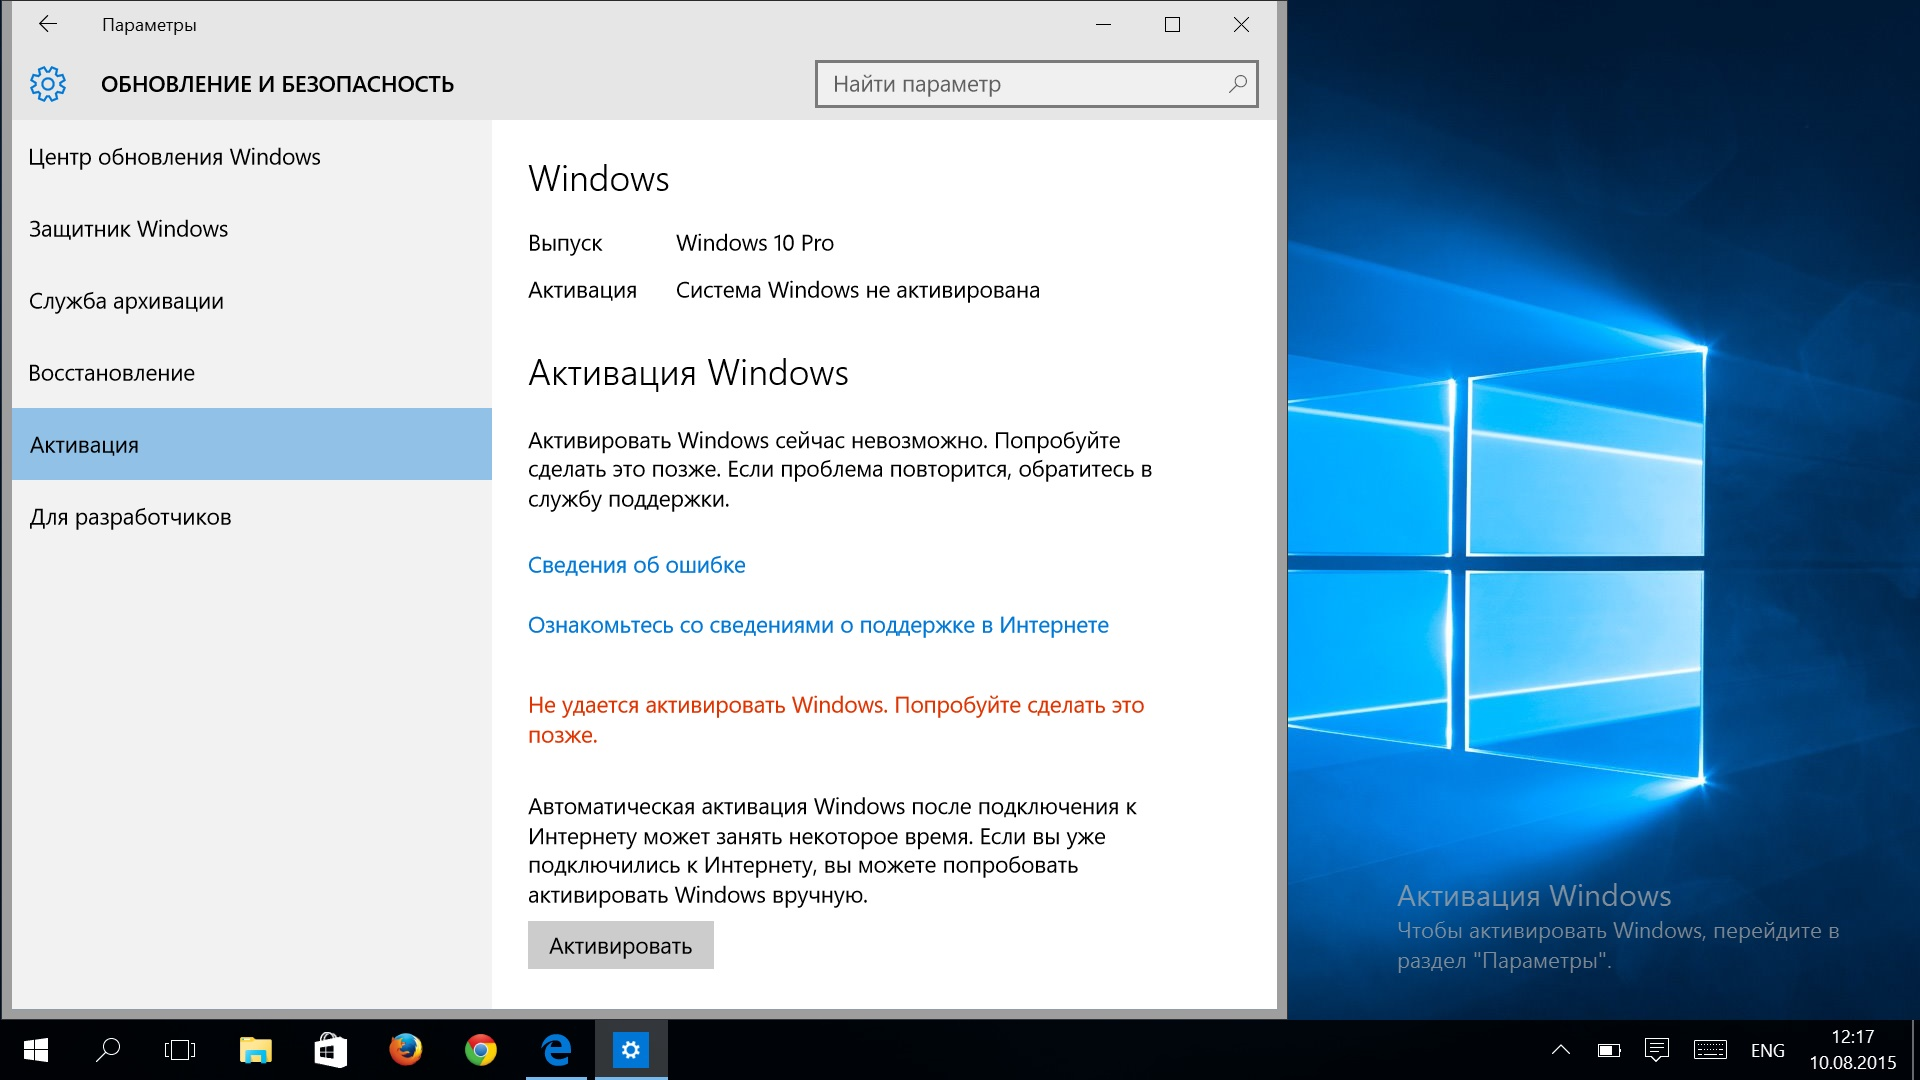 Как сделать активацию на windows 7